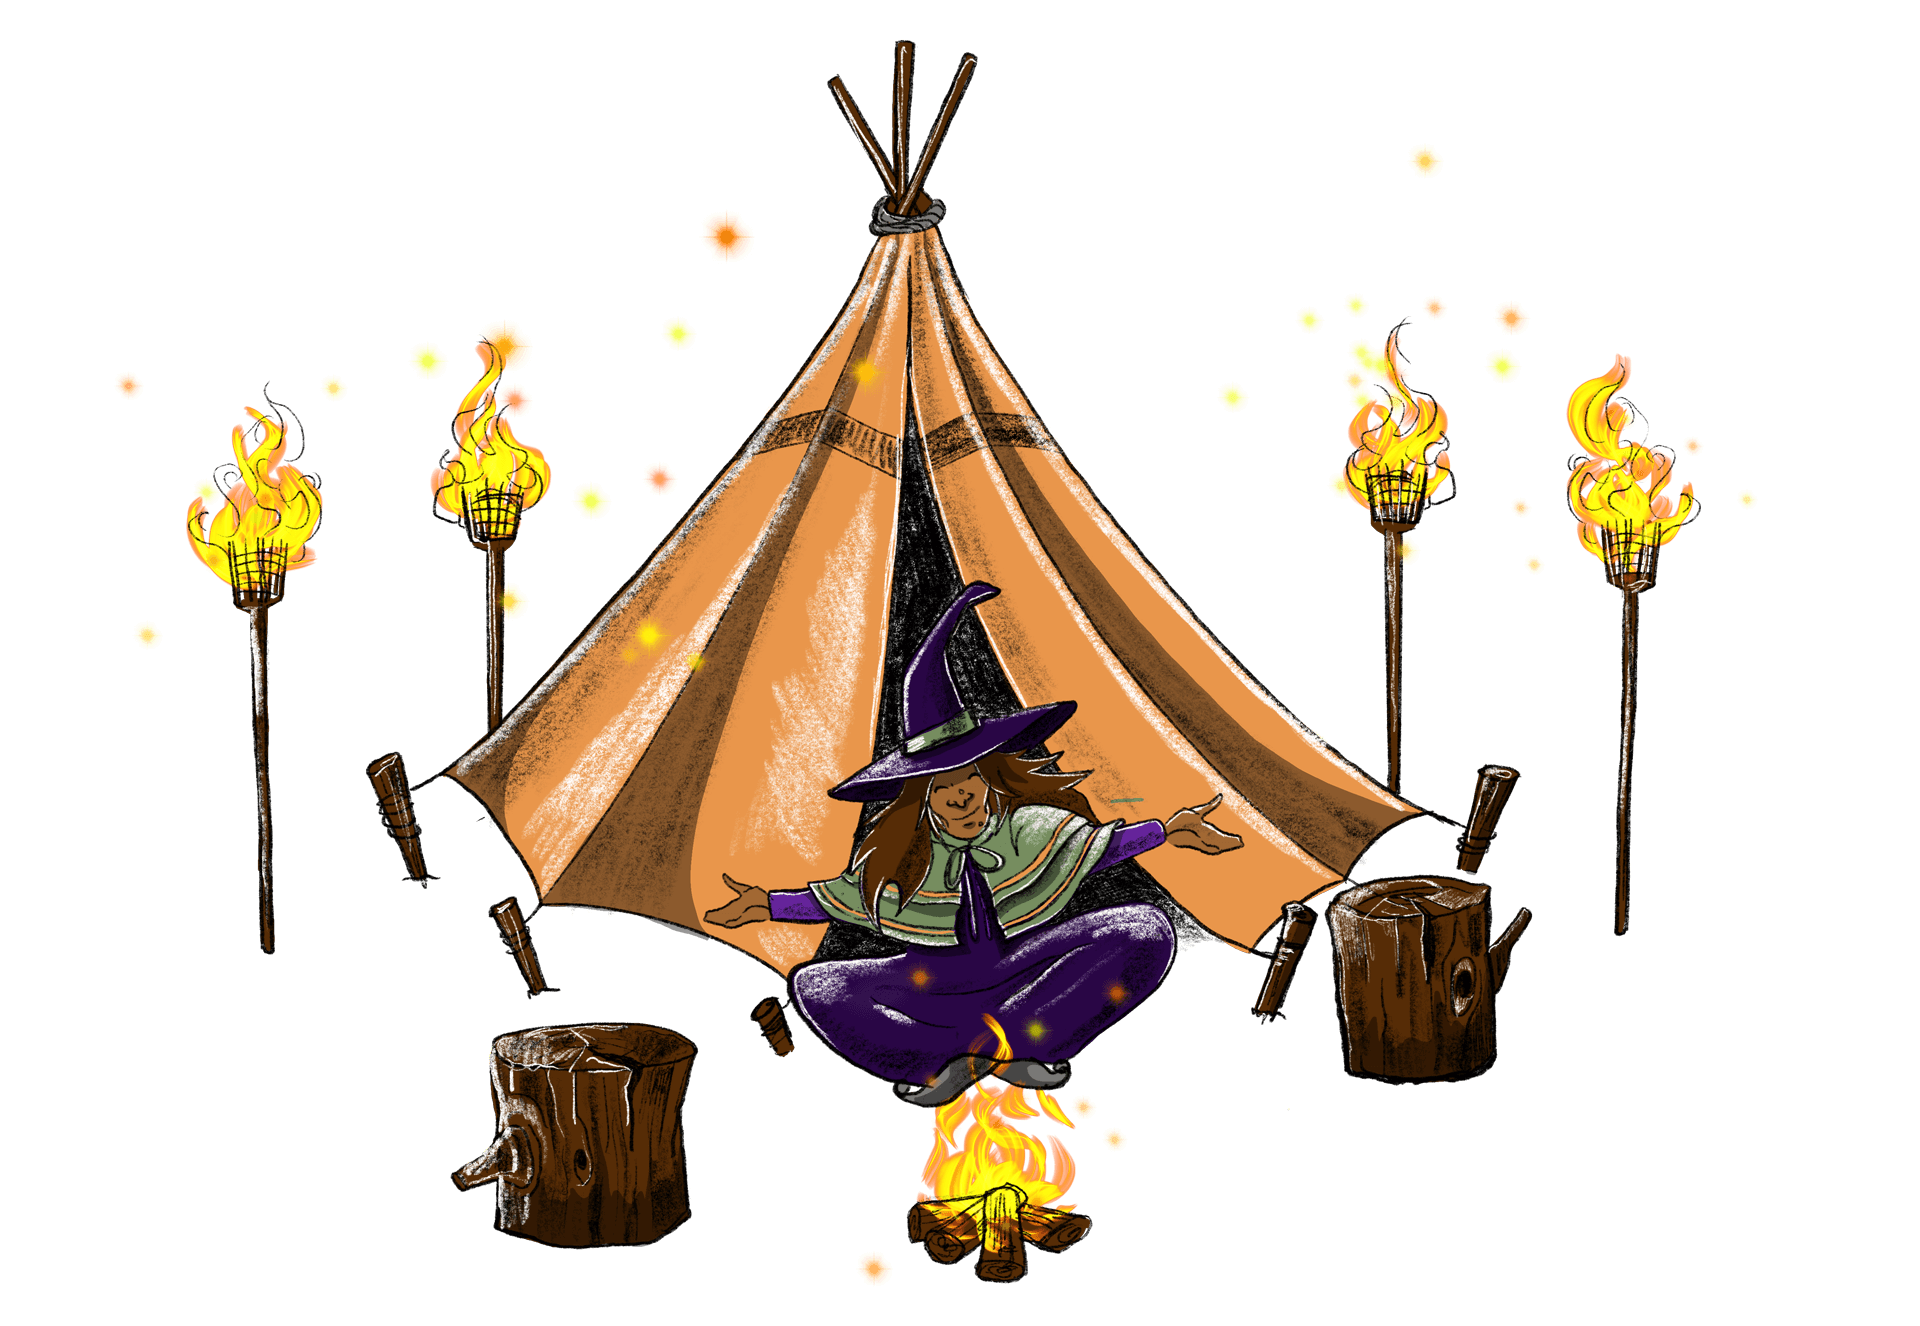 Spooky Spectacles Spooky Stories Tipi